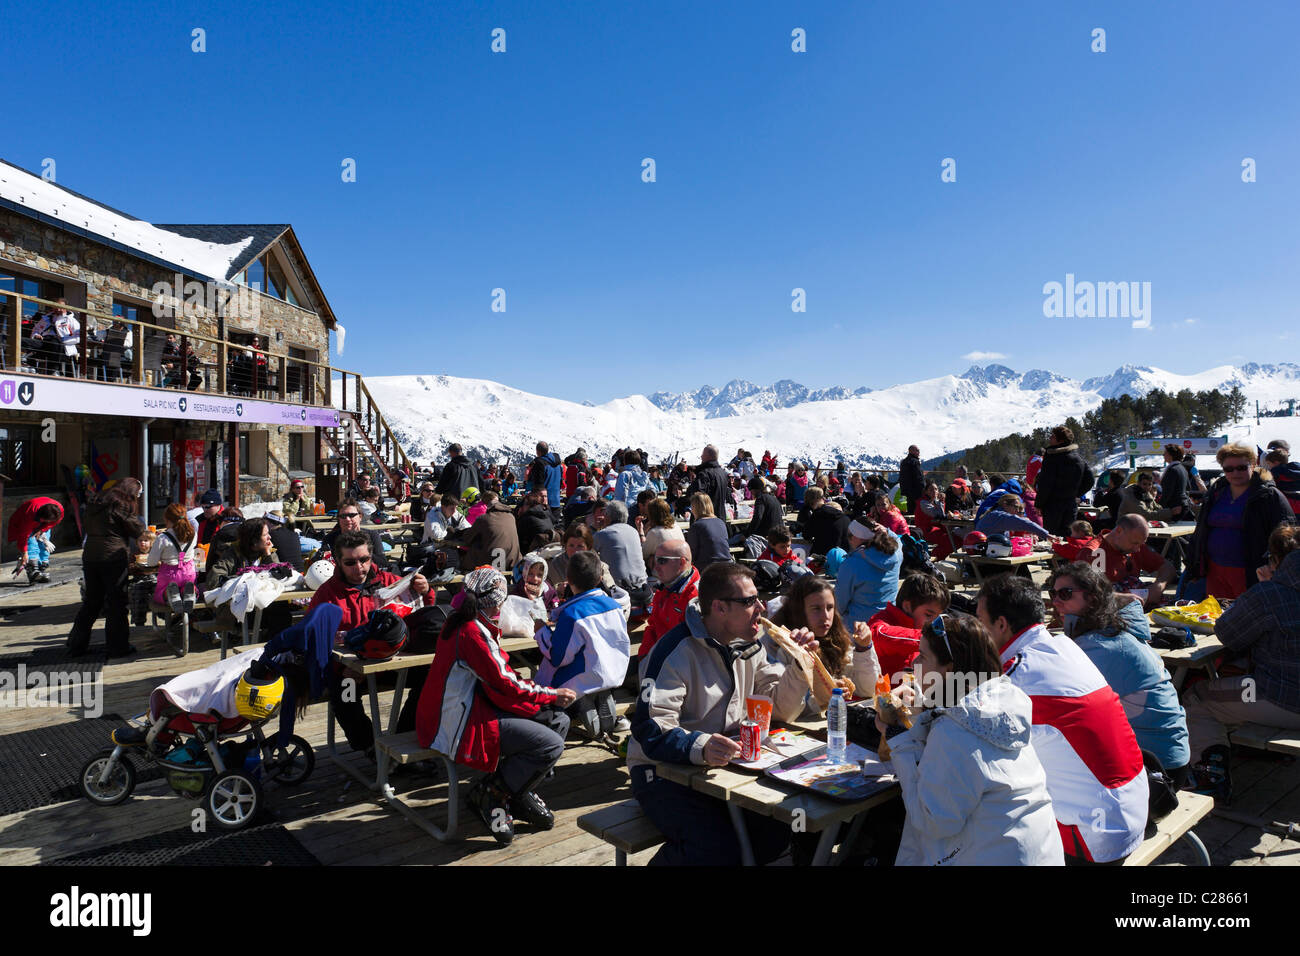 Terrace of a Mountain Restaurant at the bottom of the slopes in the Espiolets ski area, Soldeu, Grandvalira Region, - Stock Image